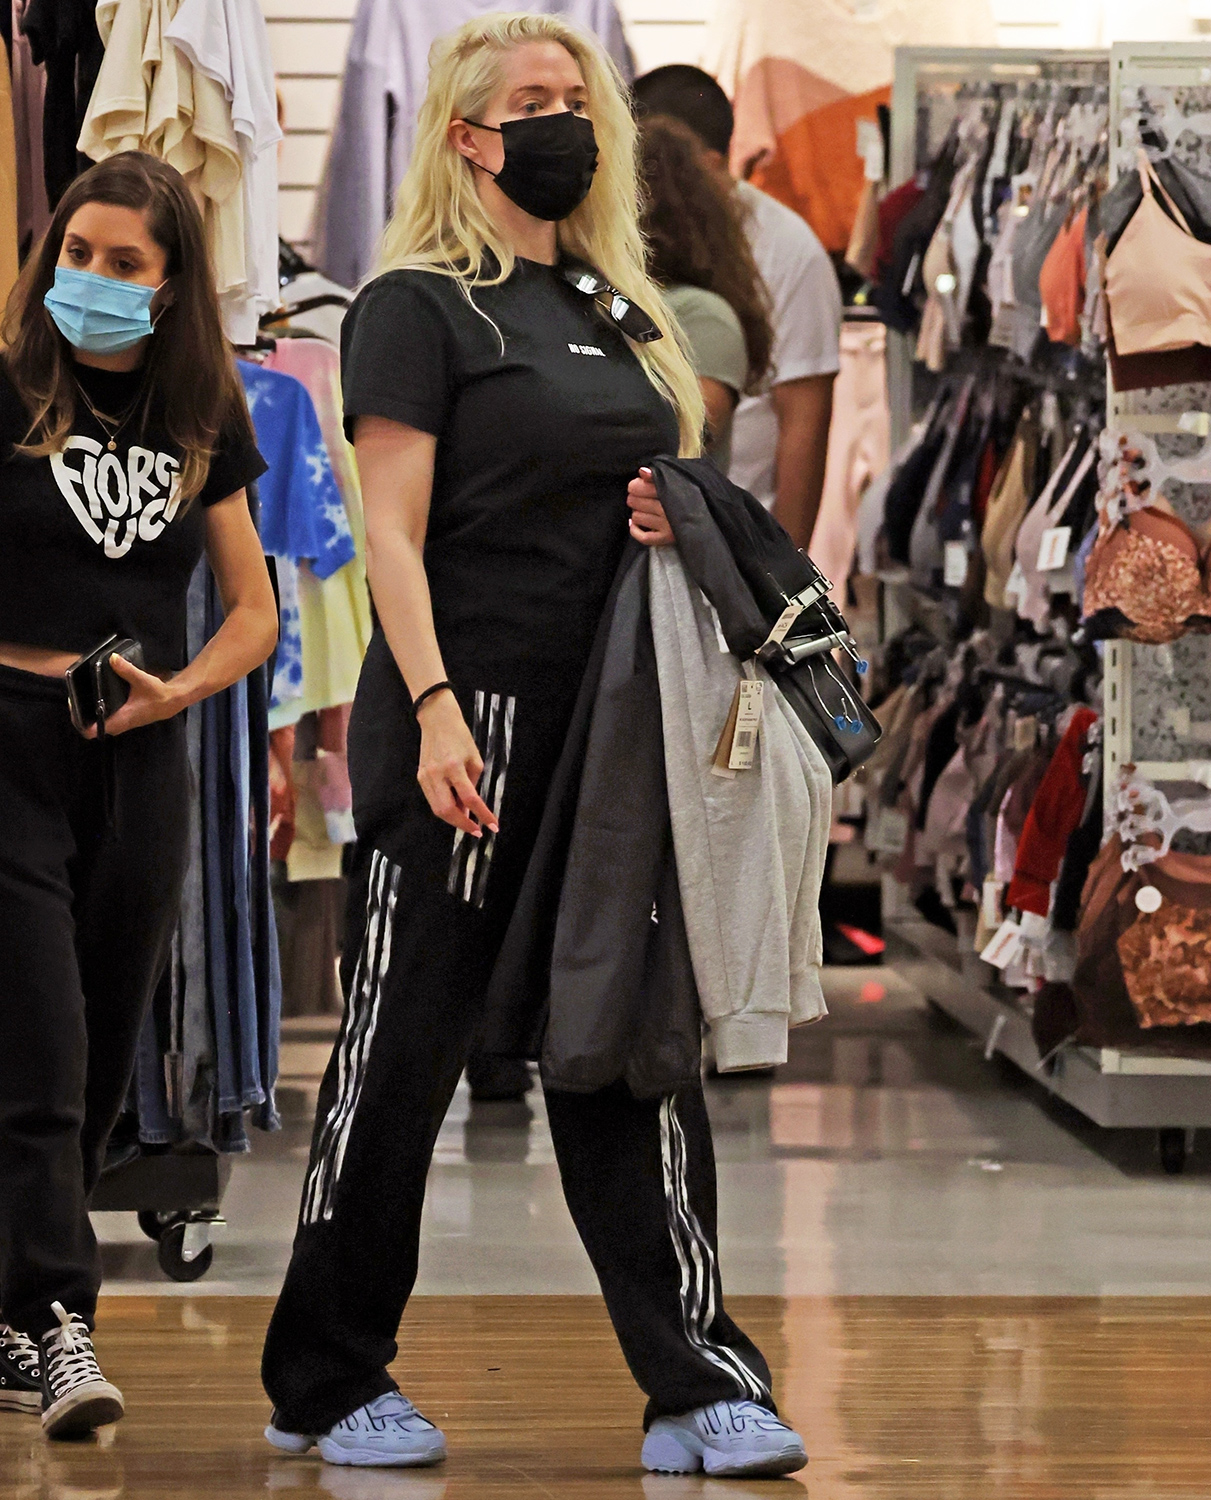 *PREMIUM-EXCLUSIVE* Pasadena, CA - *EXCLUSIVE* -***WEB EMBARGO UNTIL 9/16/21 AT 4:30pm PDT*** The Real Housewife picked out clothes from TJ Max in Pasadena with help from her assistant. The pair then headed to PetCo where Erika bought a dog ladder to help her large pup in and out of her SUV. Erika seemed tense as her shopping trip was interrupted by multiple phone calls. *Shot on September 14, 2021*